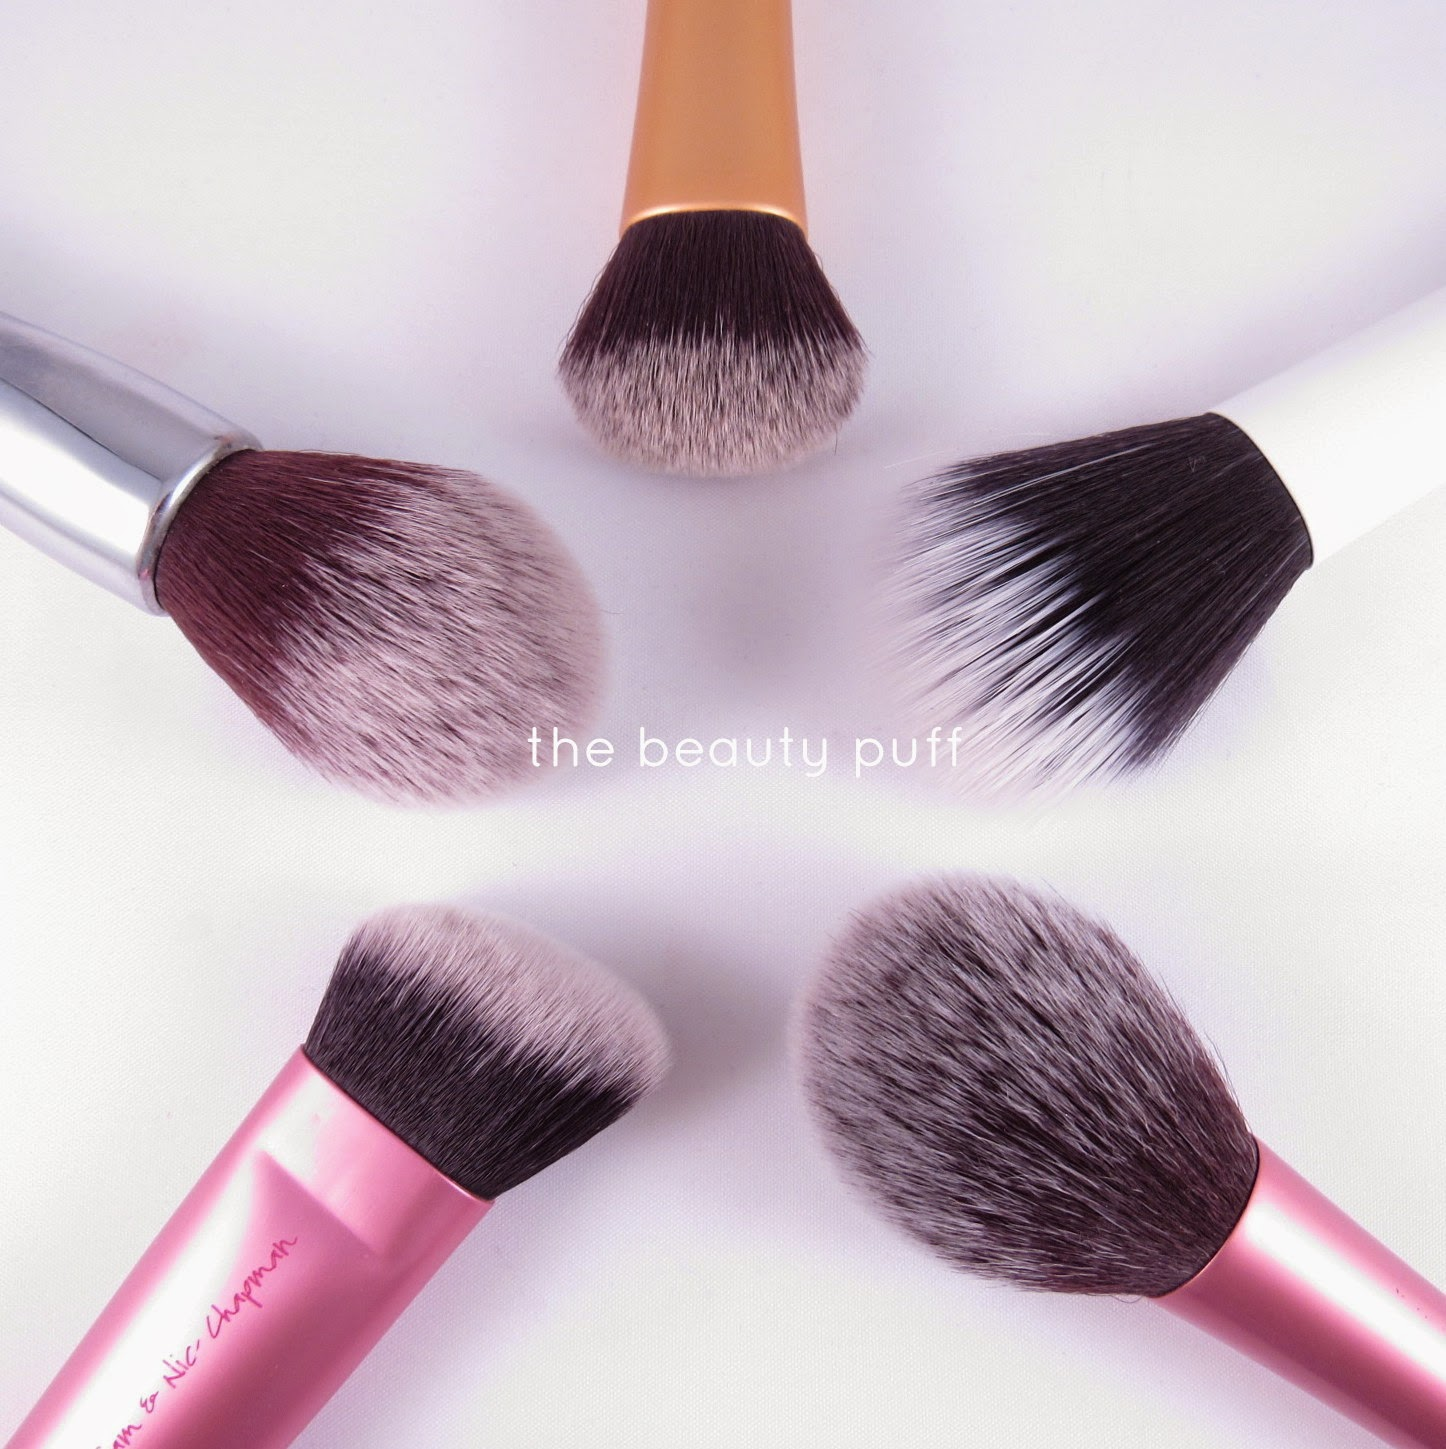 real techniques it cosmetics brushes - the beauty puff